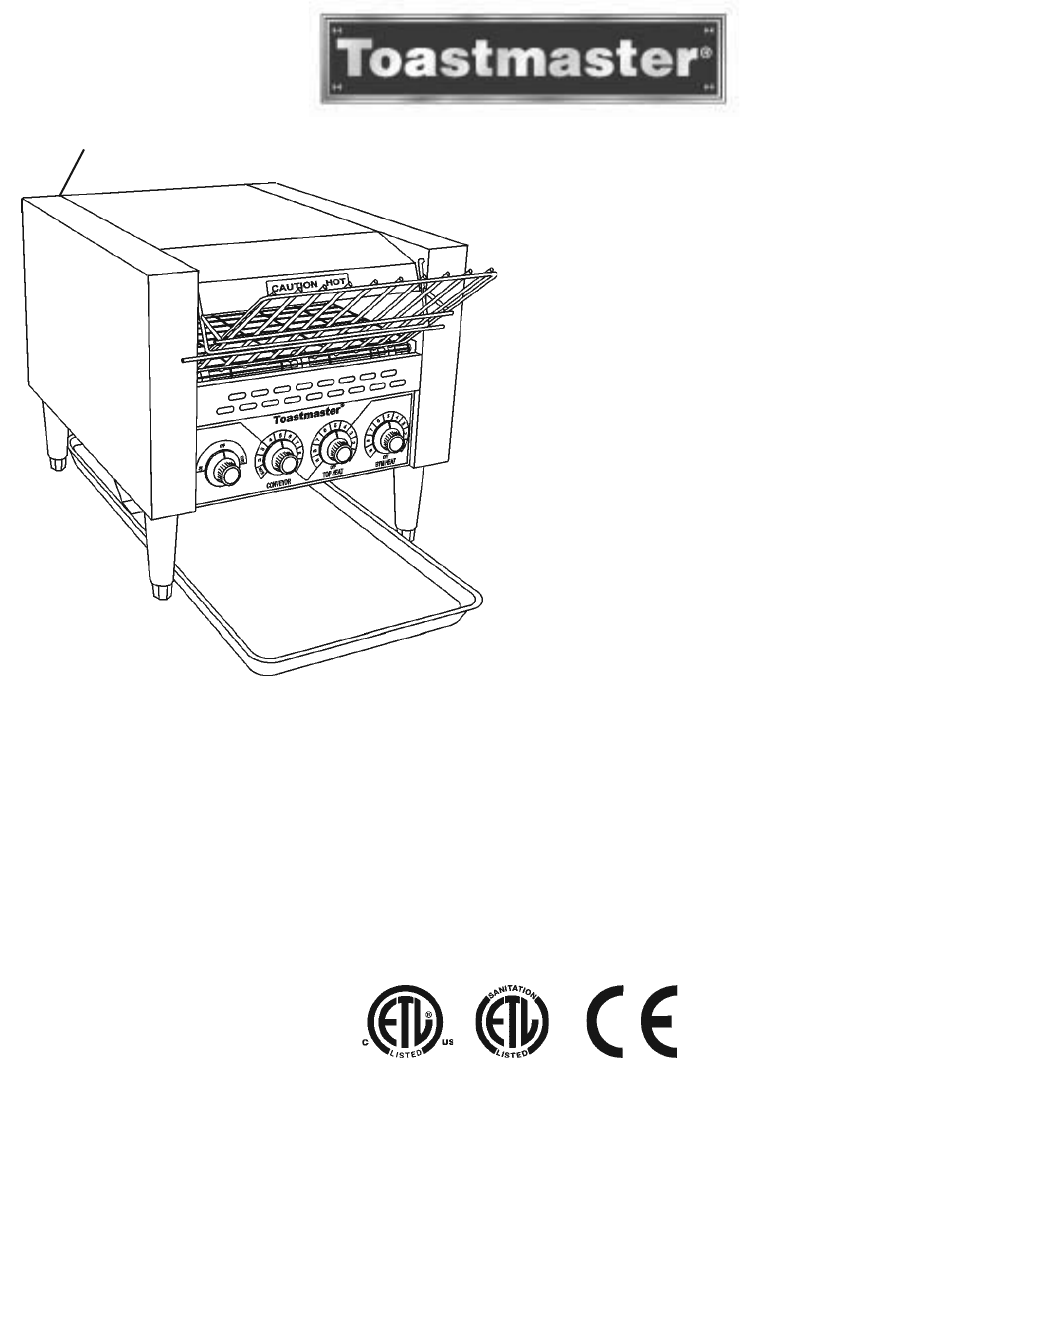 Toastmaster Toaster Tc17a Users Manual C Tc21a Spl122405 Pf Bd Wiring Schematic